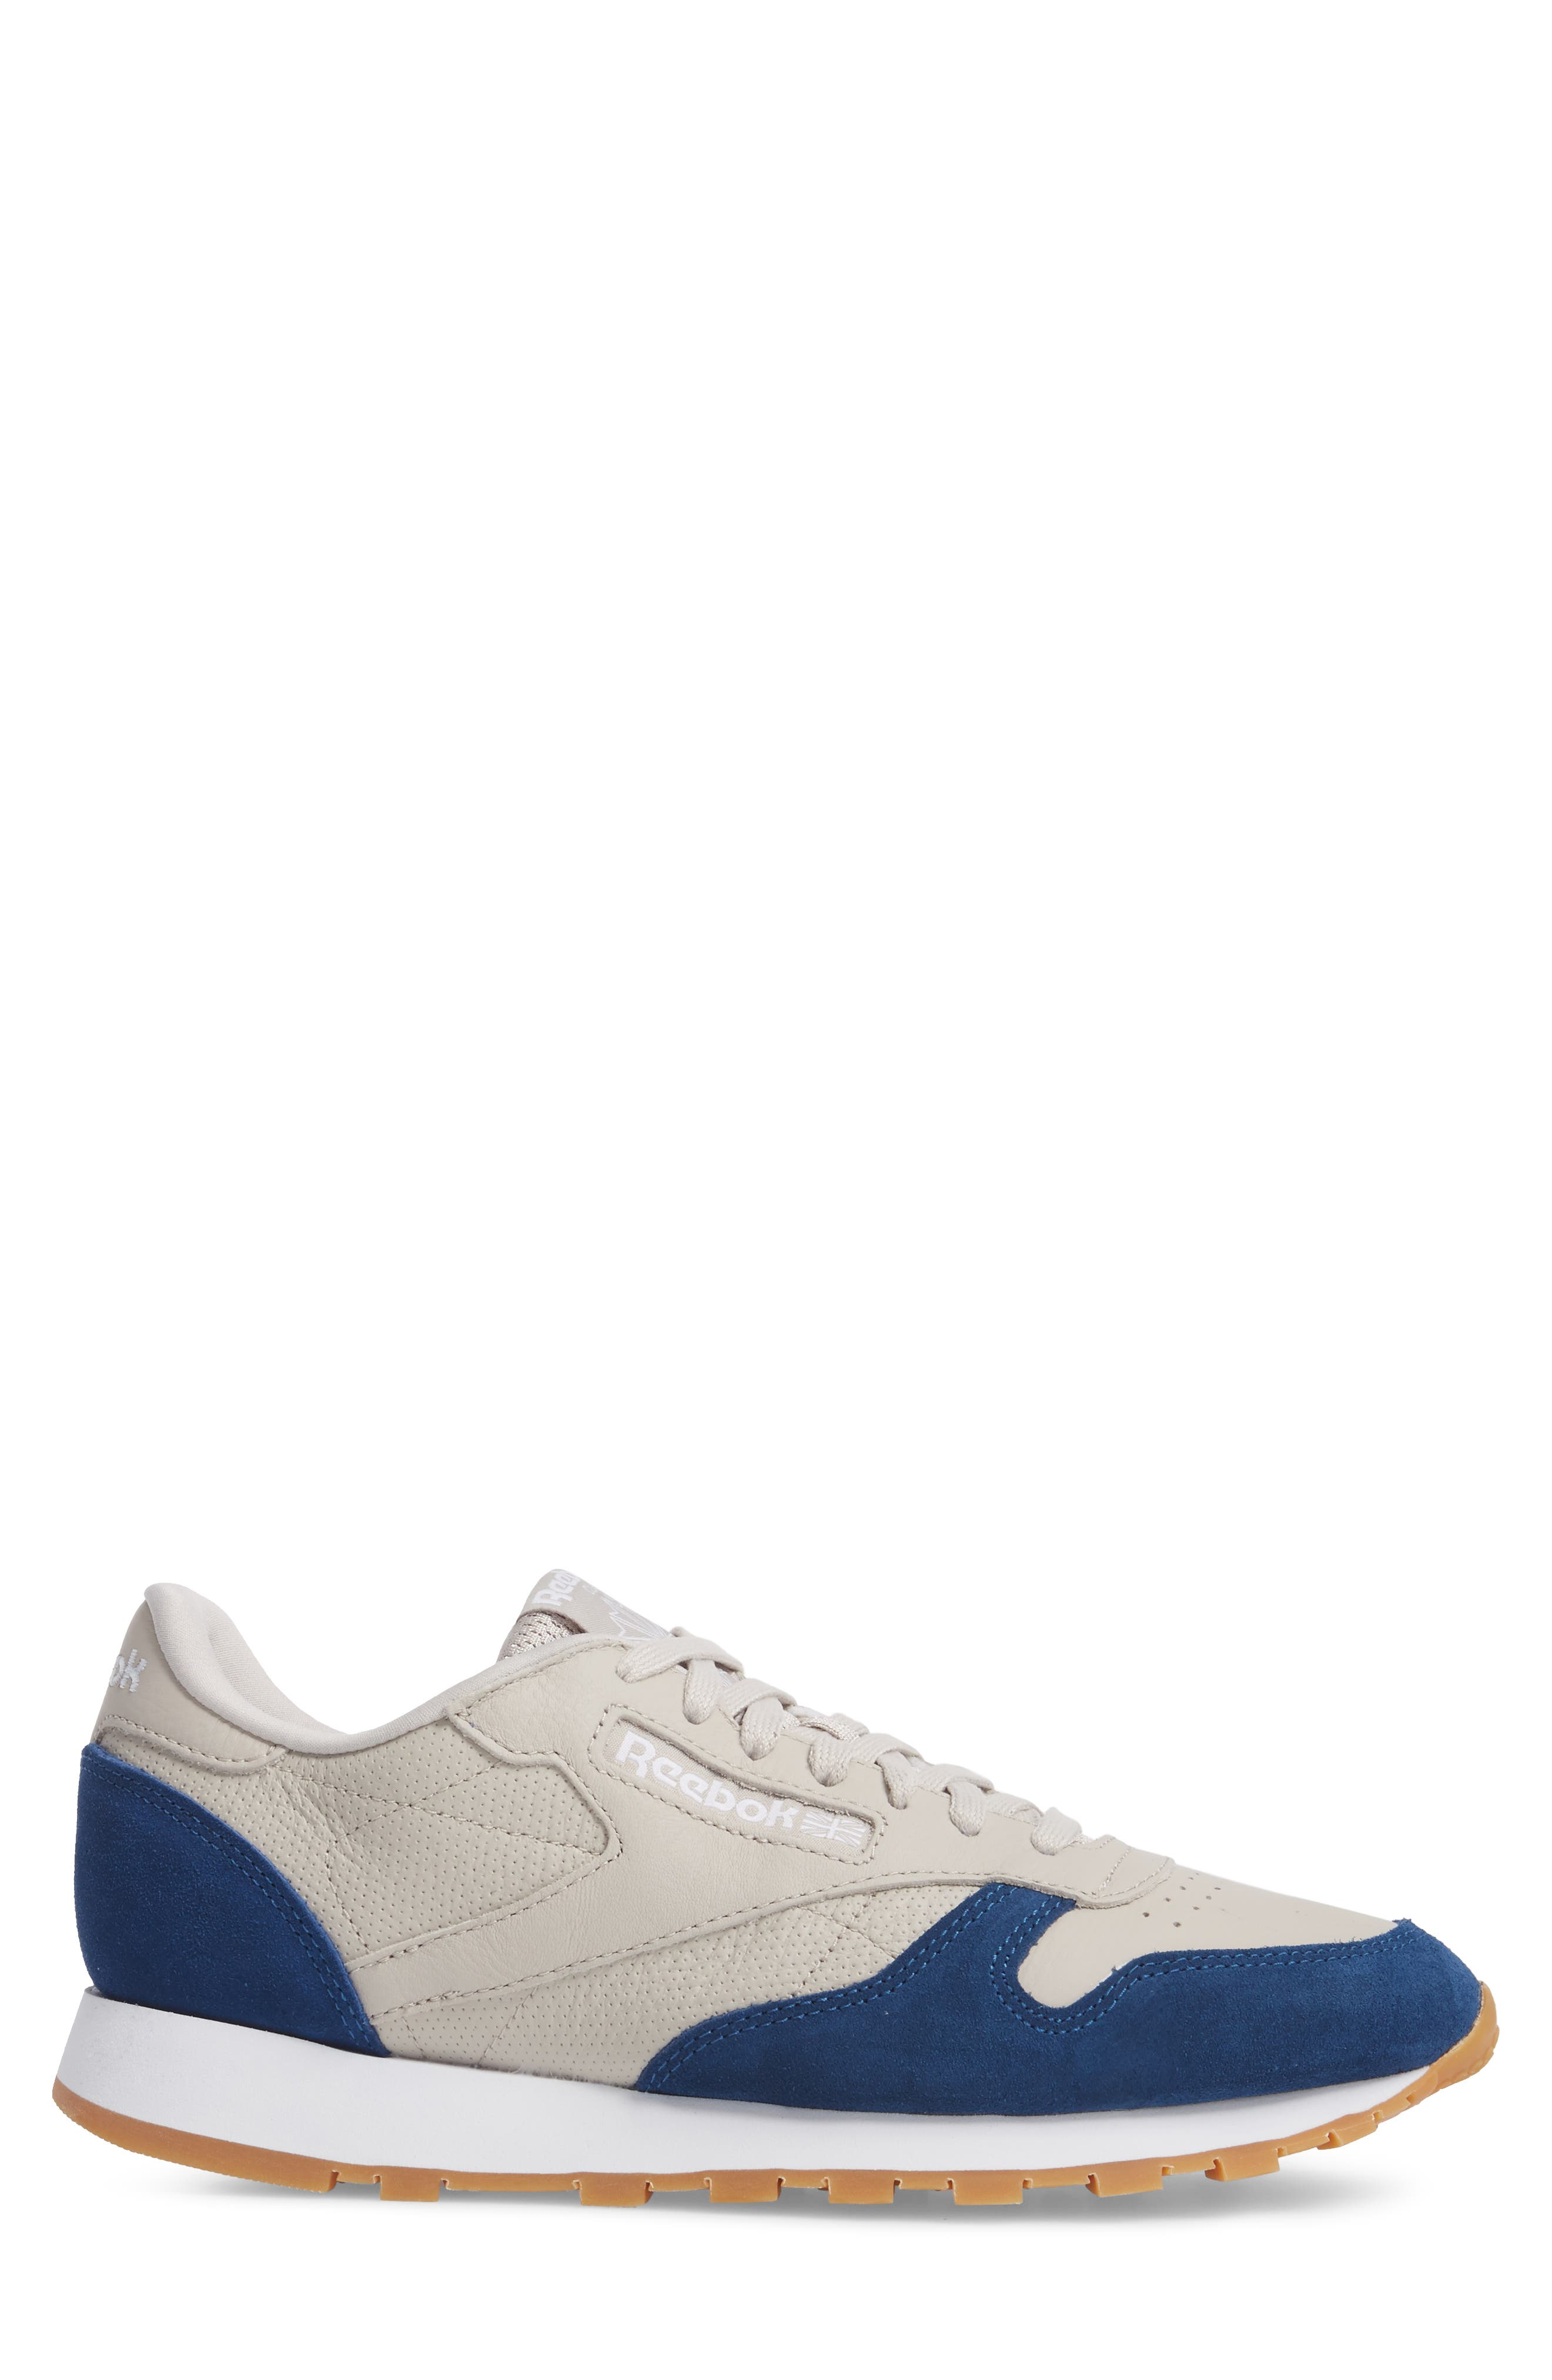 Classic Leather GI Sneaker,                             Alternate thumbnail 3, color,                             Sand Stone/ Washed Blue/ White